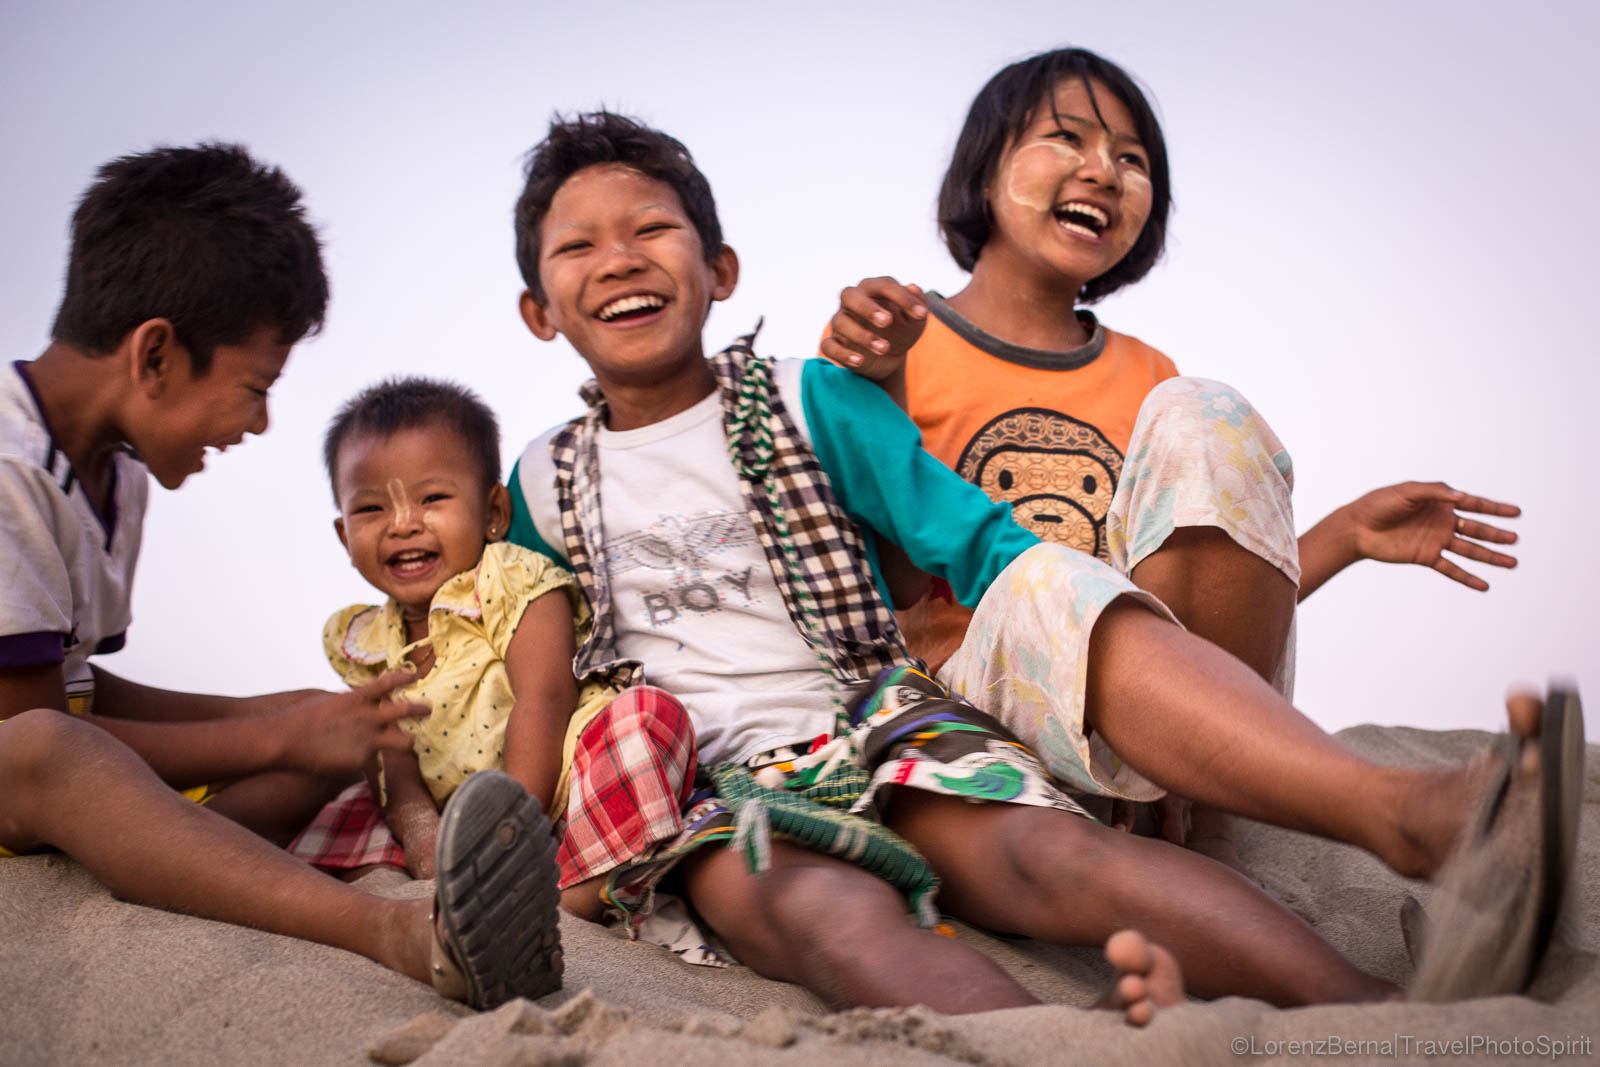 Burmese children laughing.